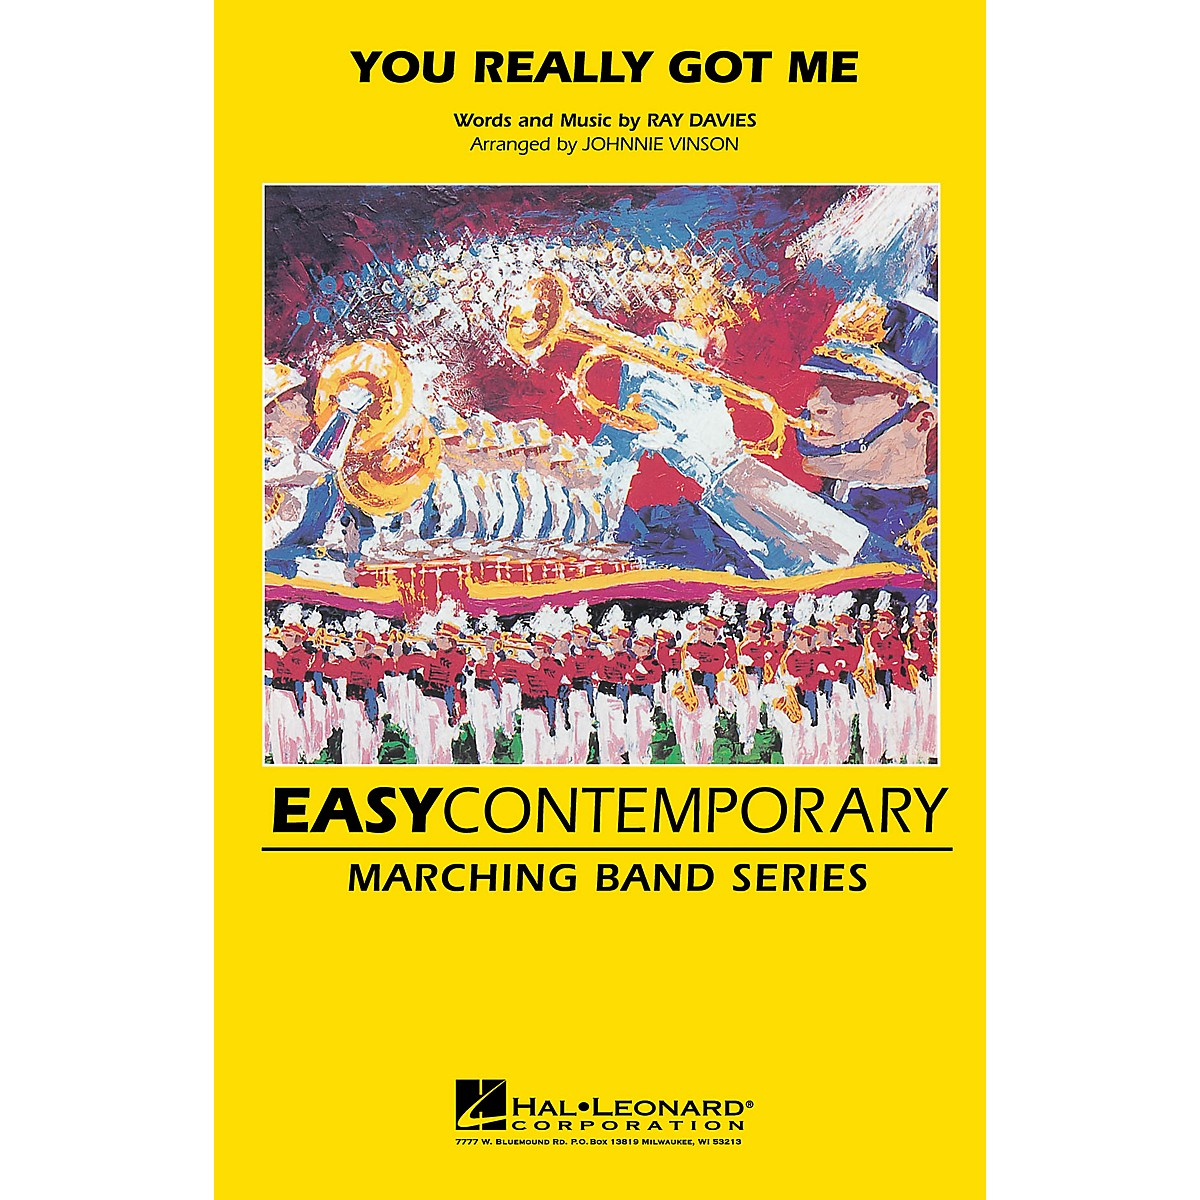 Hal Leonard You Really Got Me Marching Band Level 2-3 by The Kinks Arranged by Johnnie Vinson